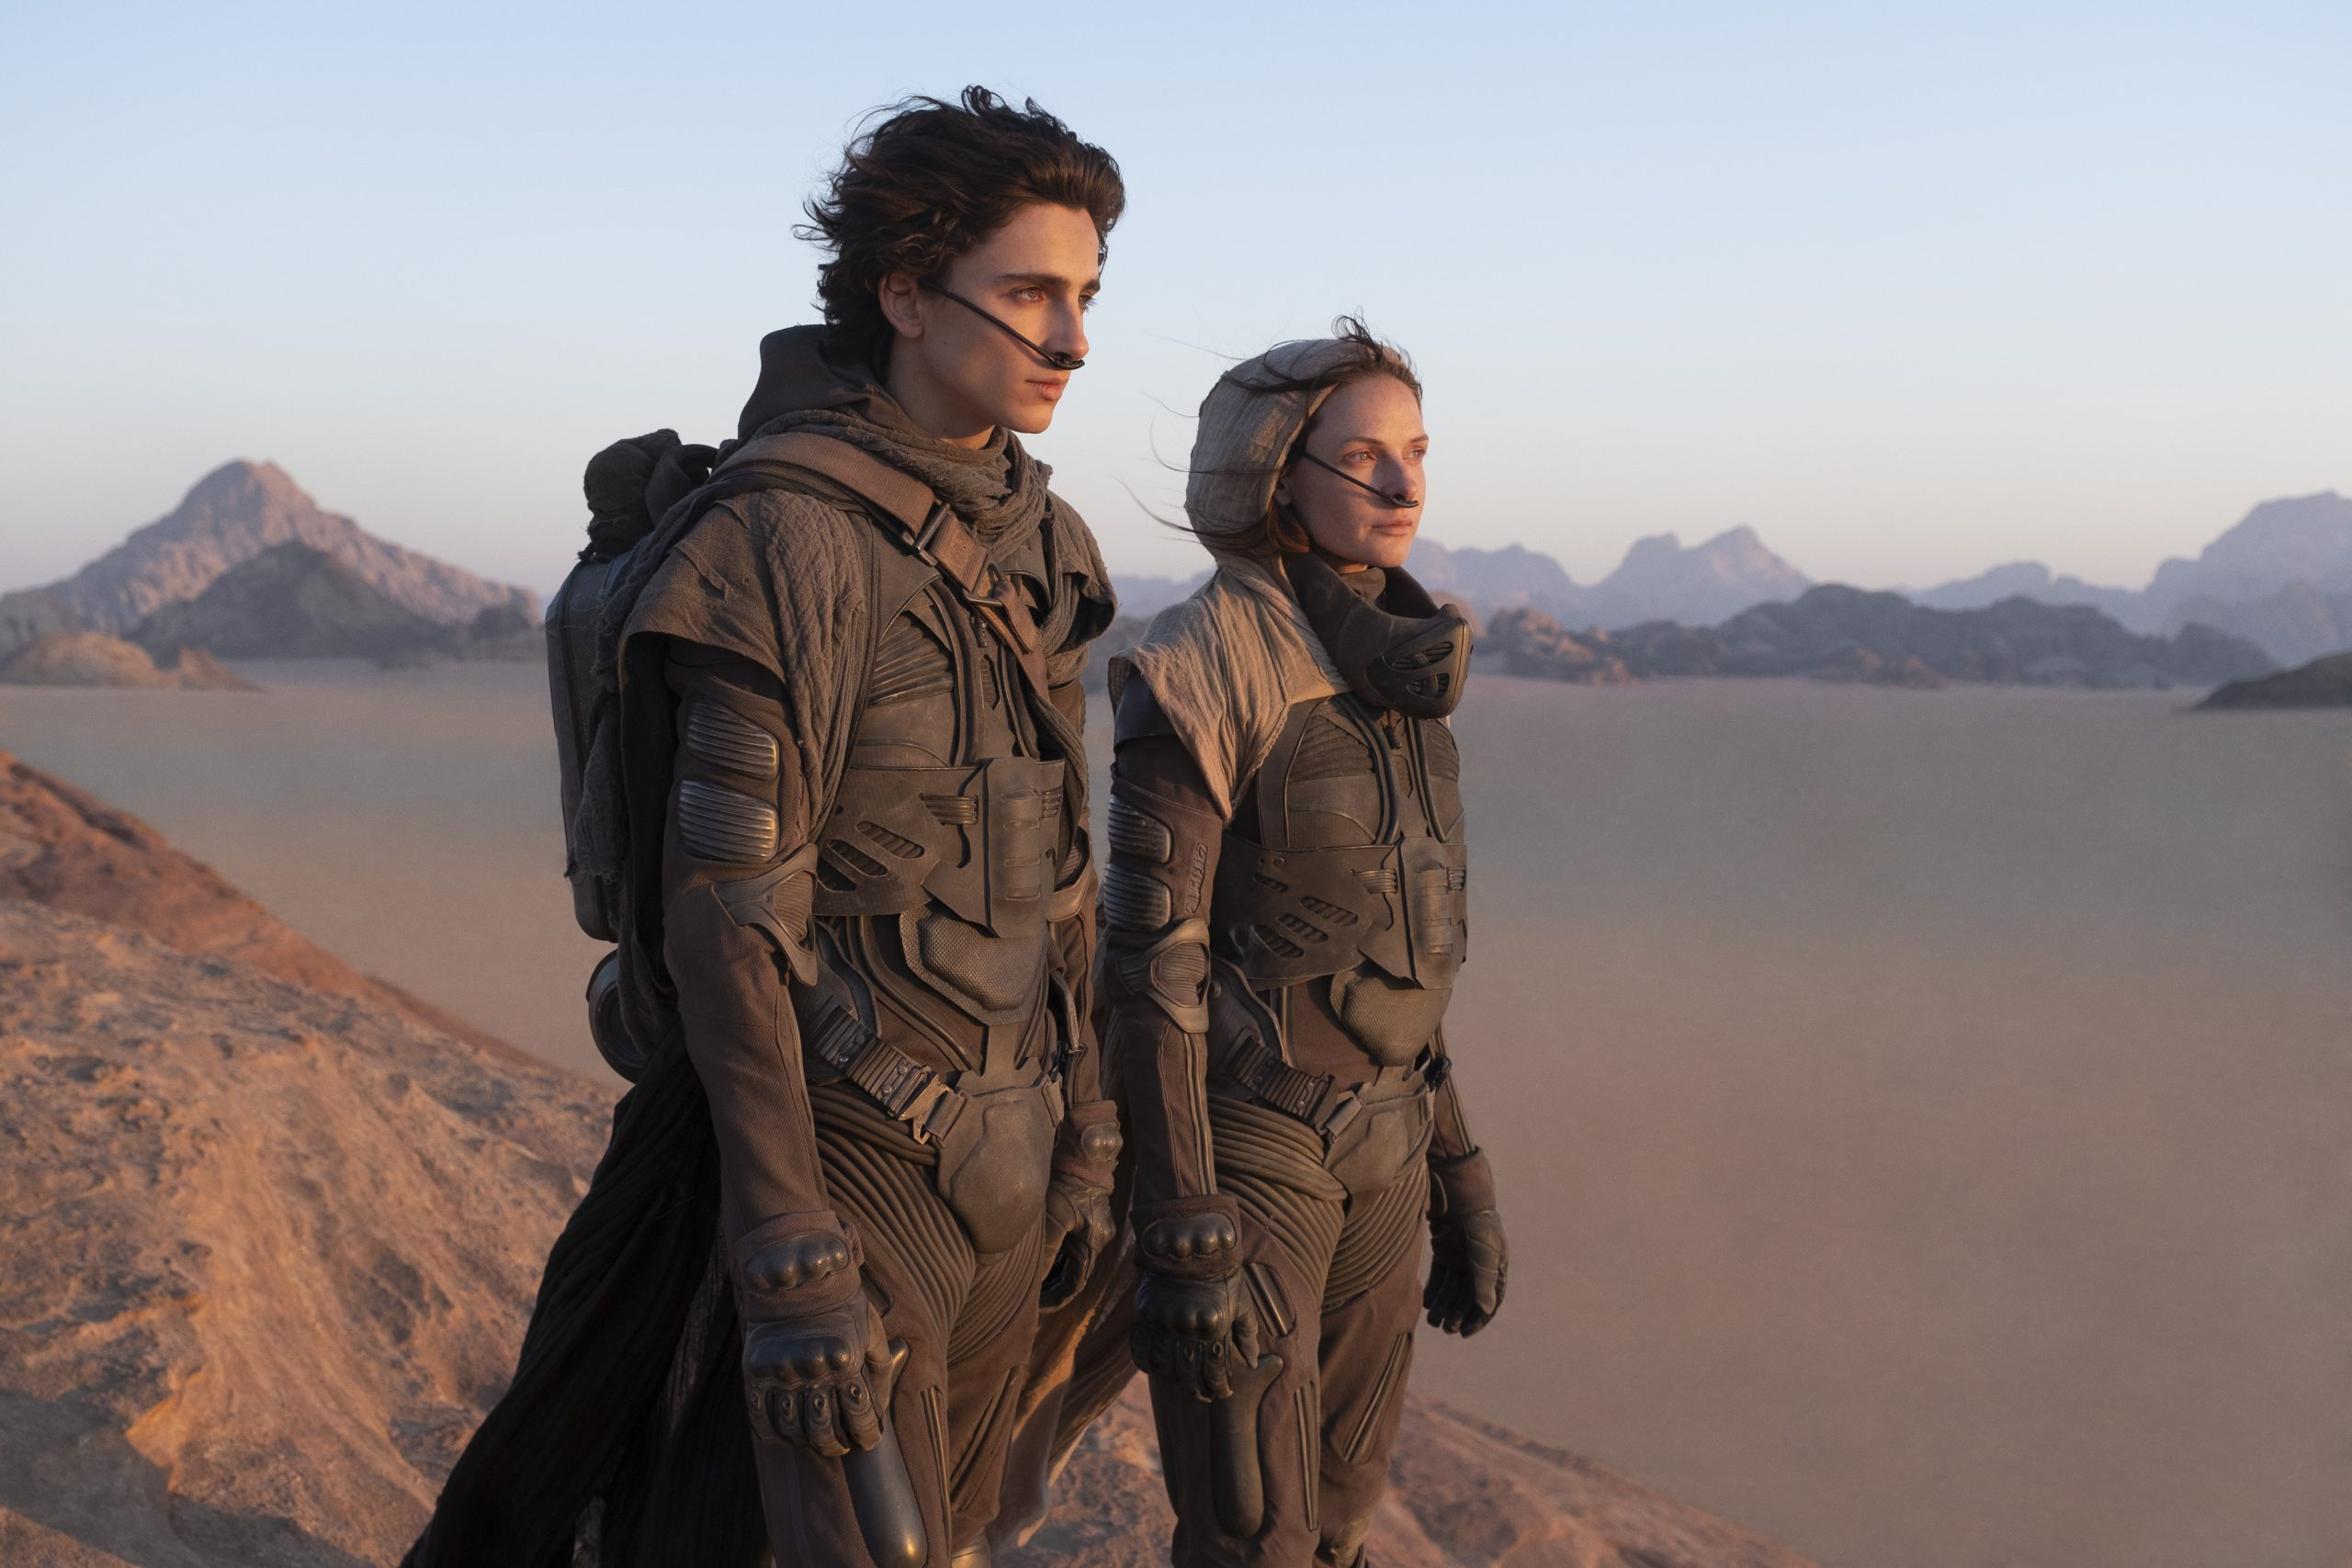 Enjoy These Dune Images in Glorious HD Especially Oscar Isaac 2560x1707